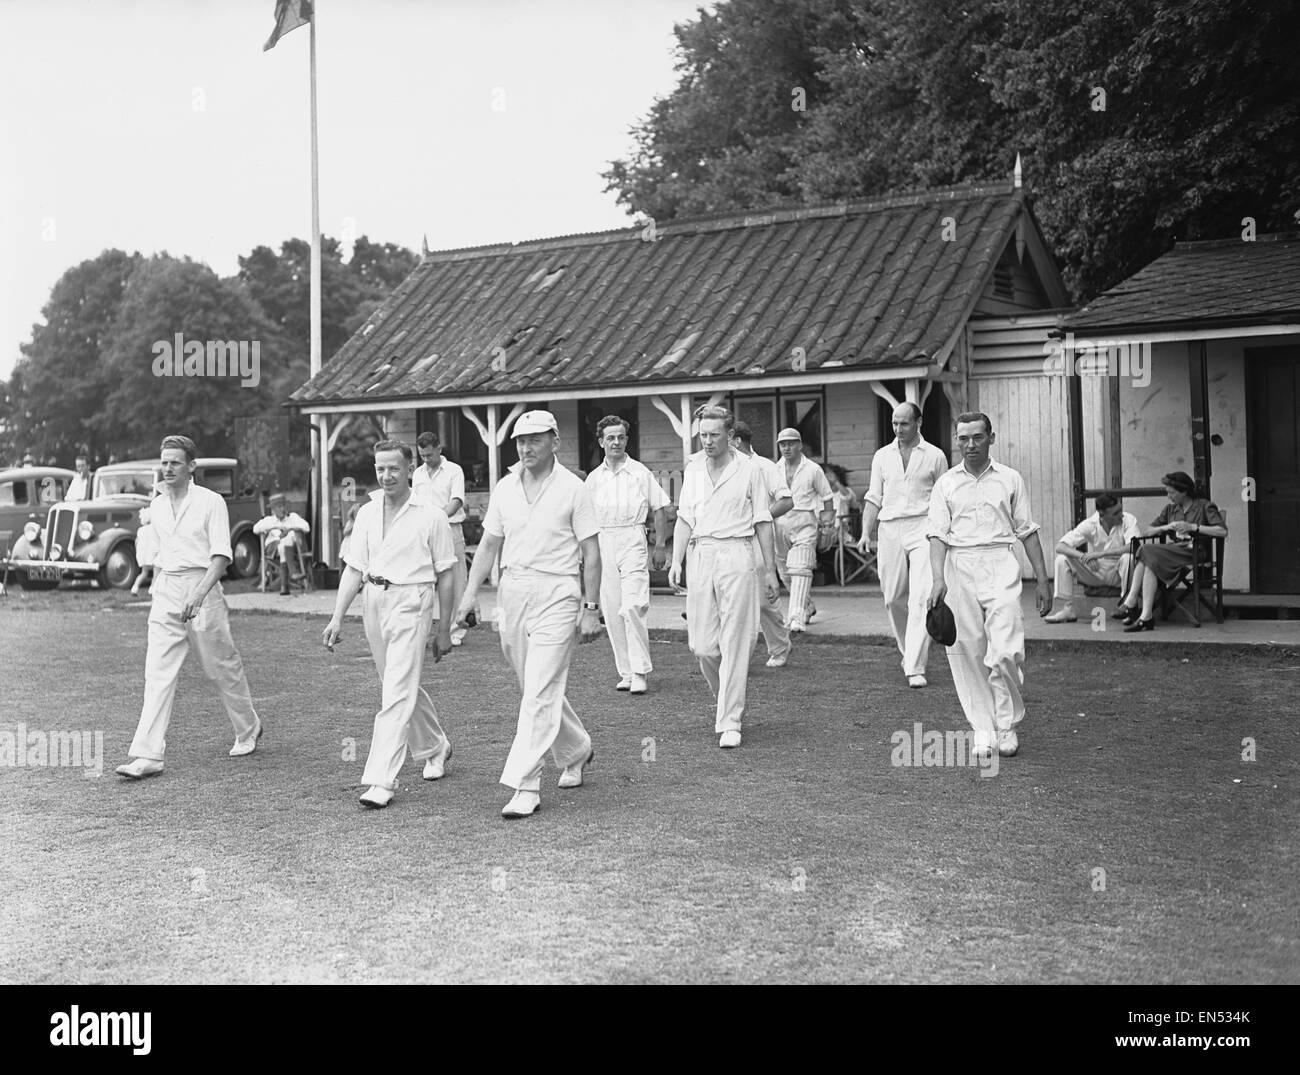 The local cricket team at Meopham one of the oldest teams in Kent seen taking to the field Circa June 1950 Stock Photo